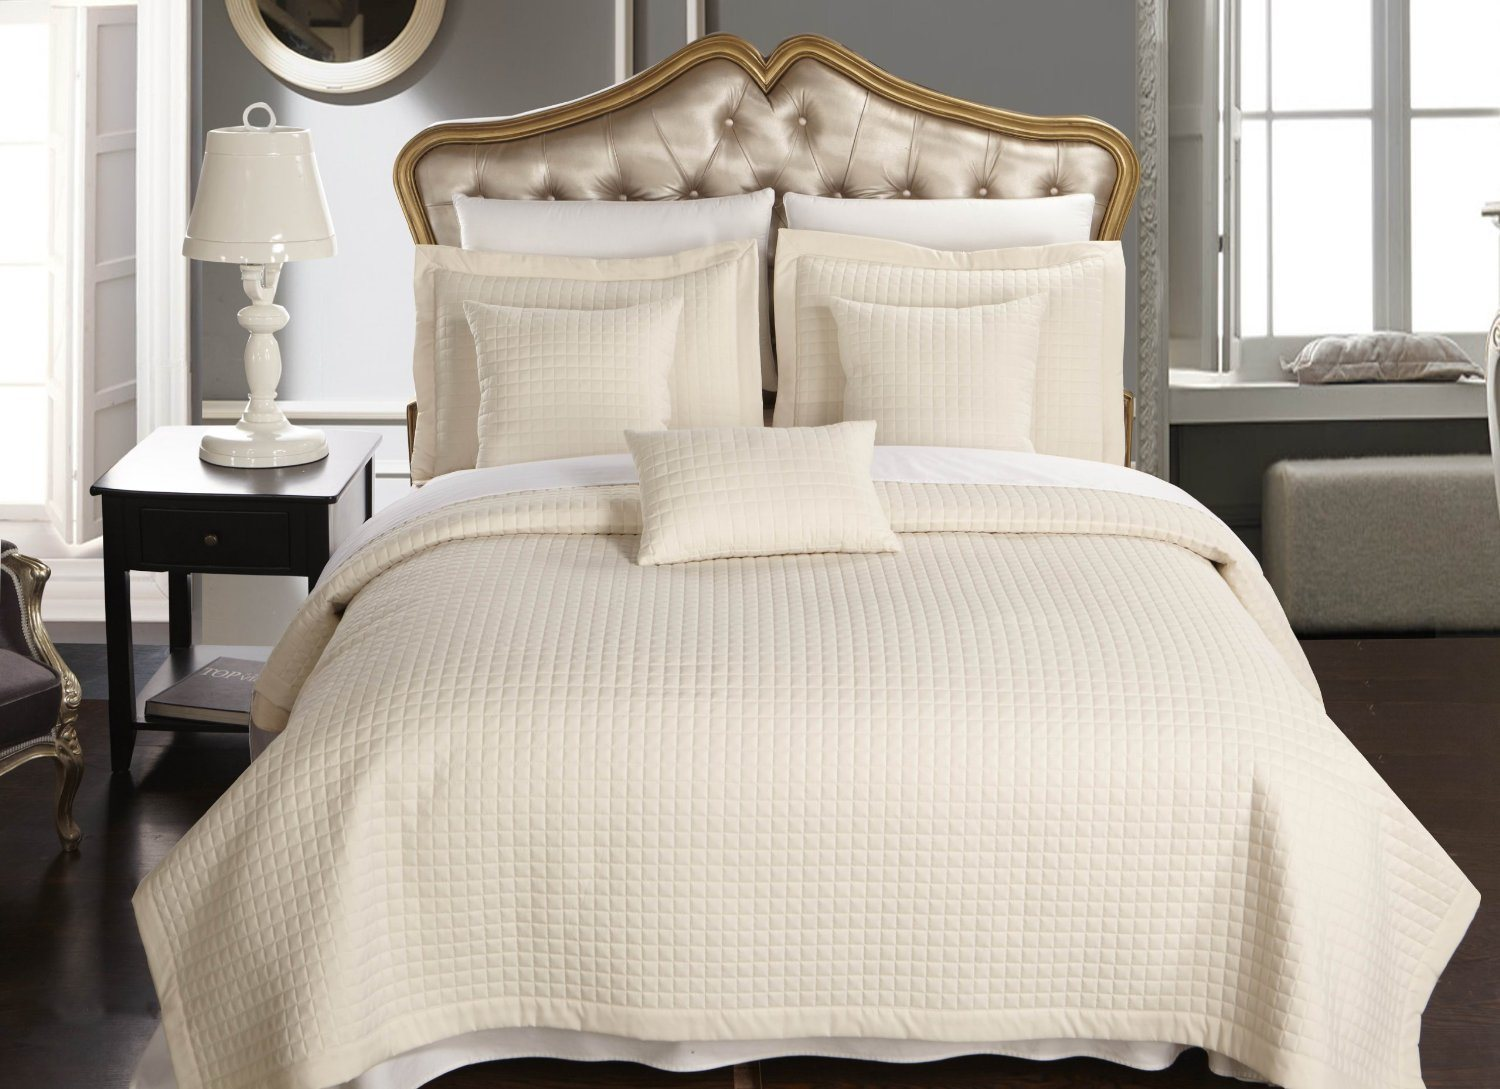 Home/Hotel Checkered Quilt California-King Size Coverlet 3PC Set (DPF1074)